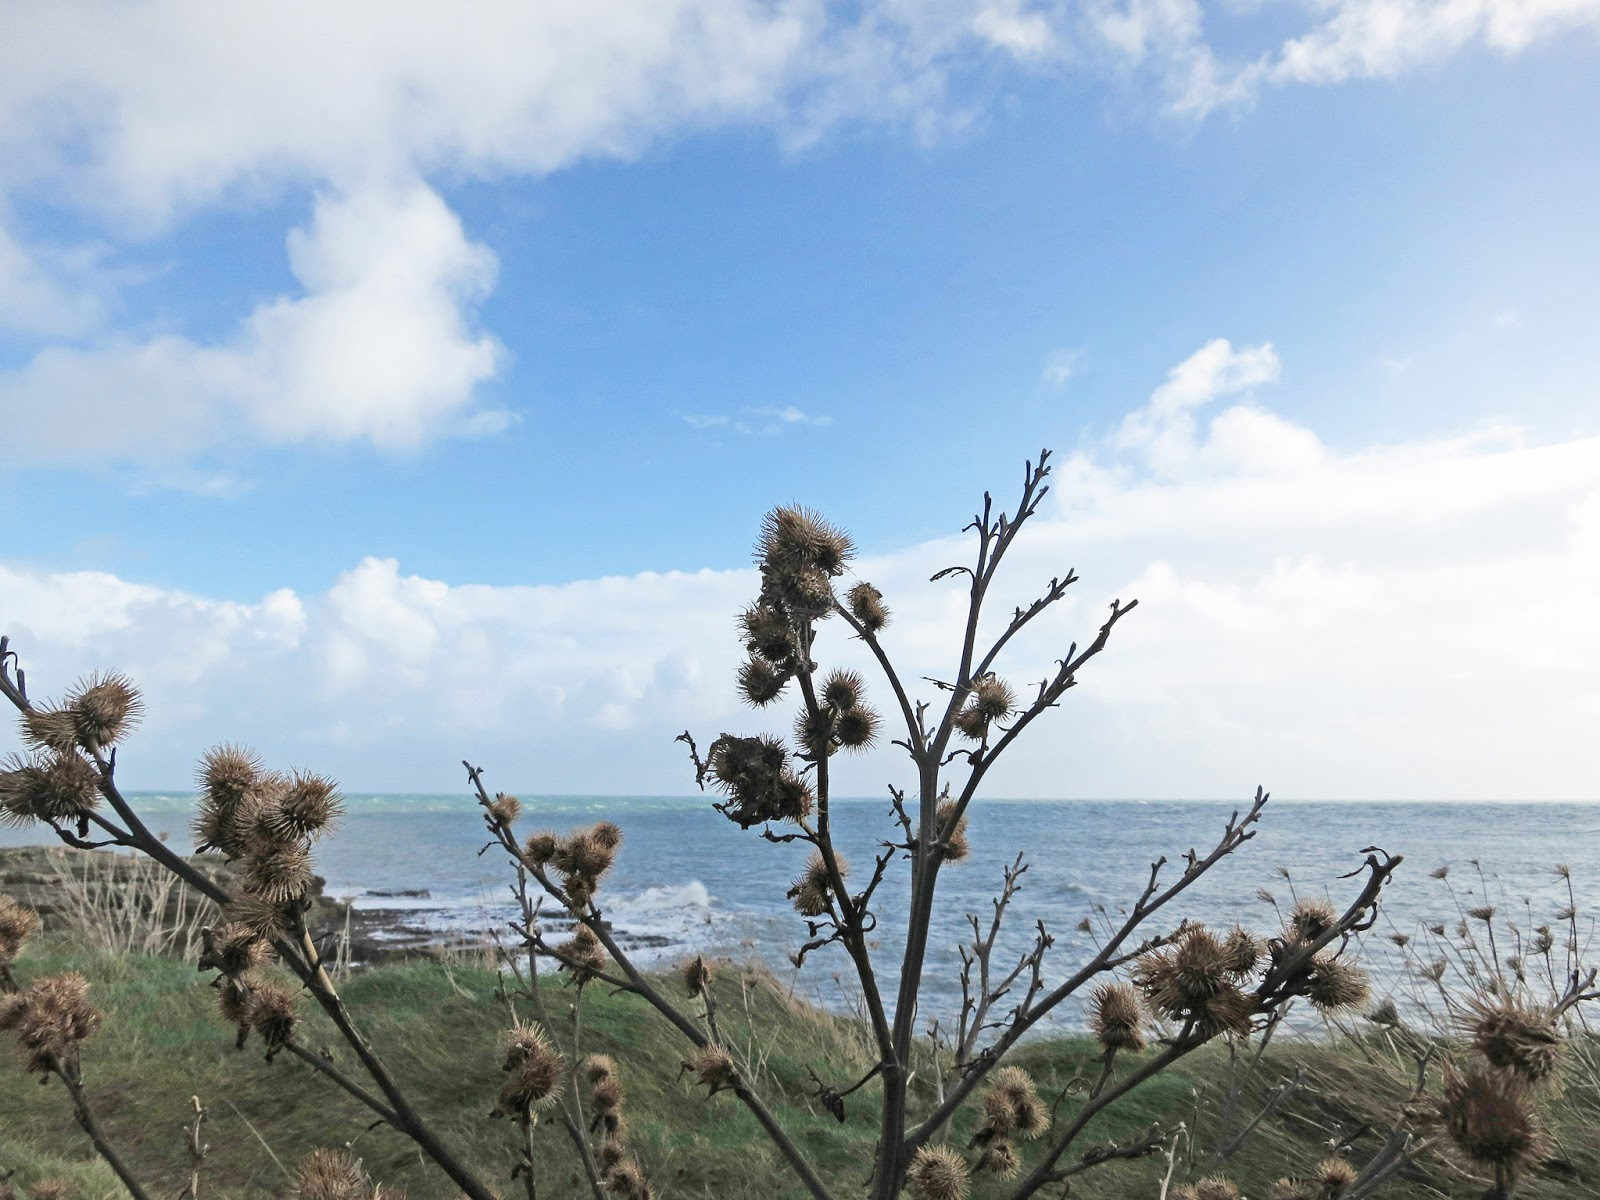 Dry and dead Burdock plant with brown and prickly seed heads. Portland Bill.